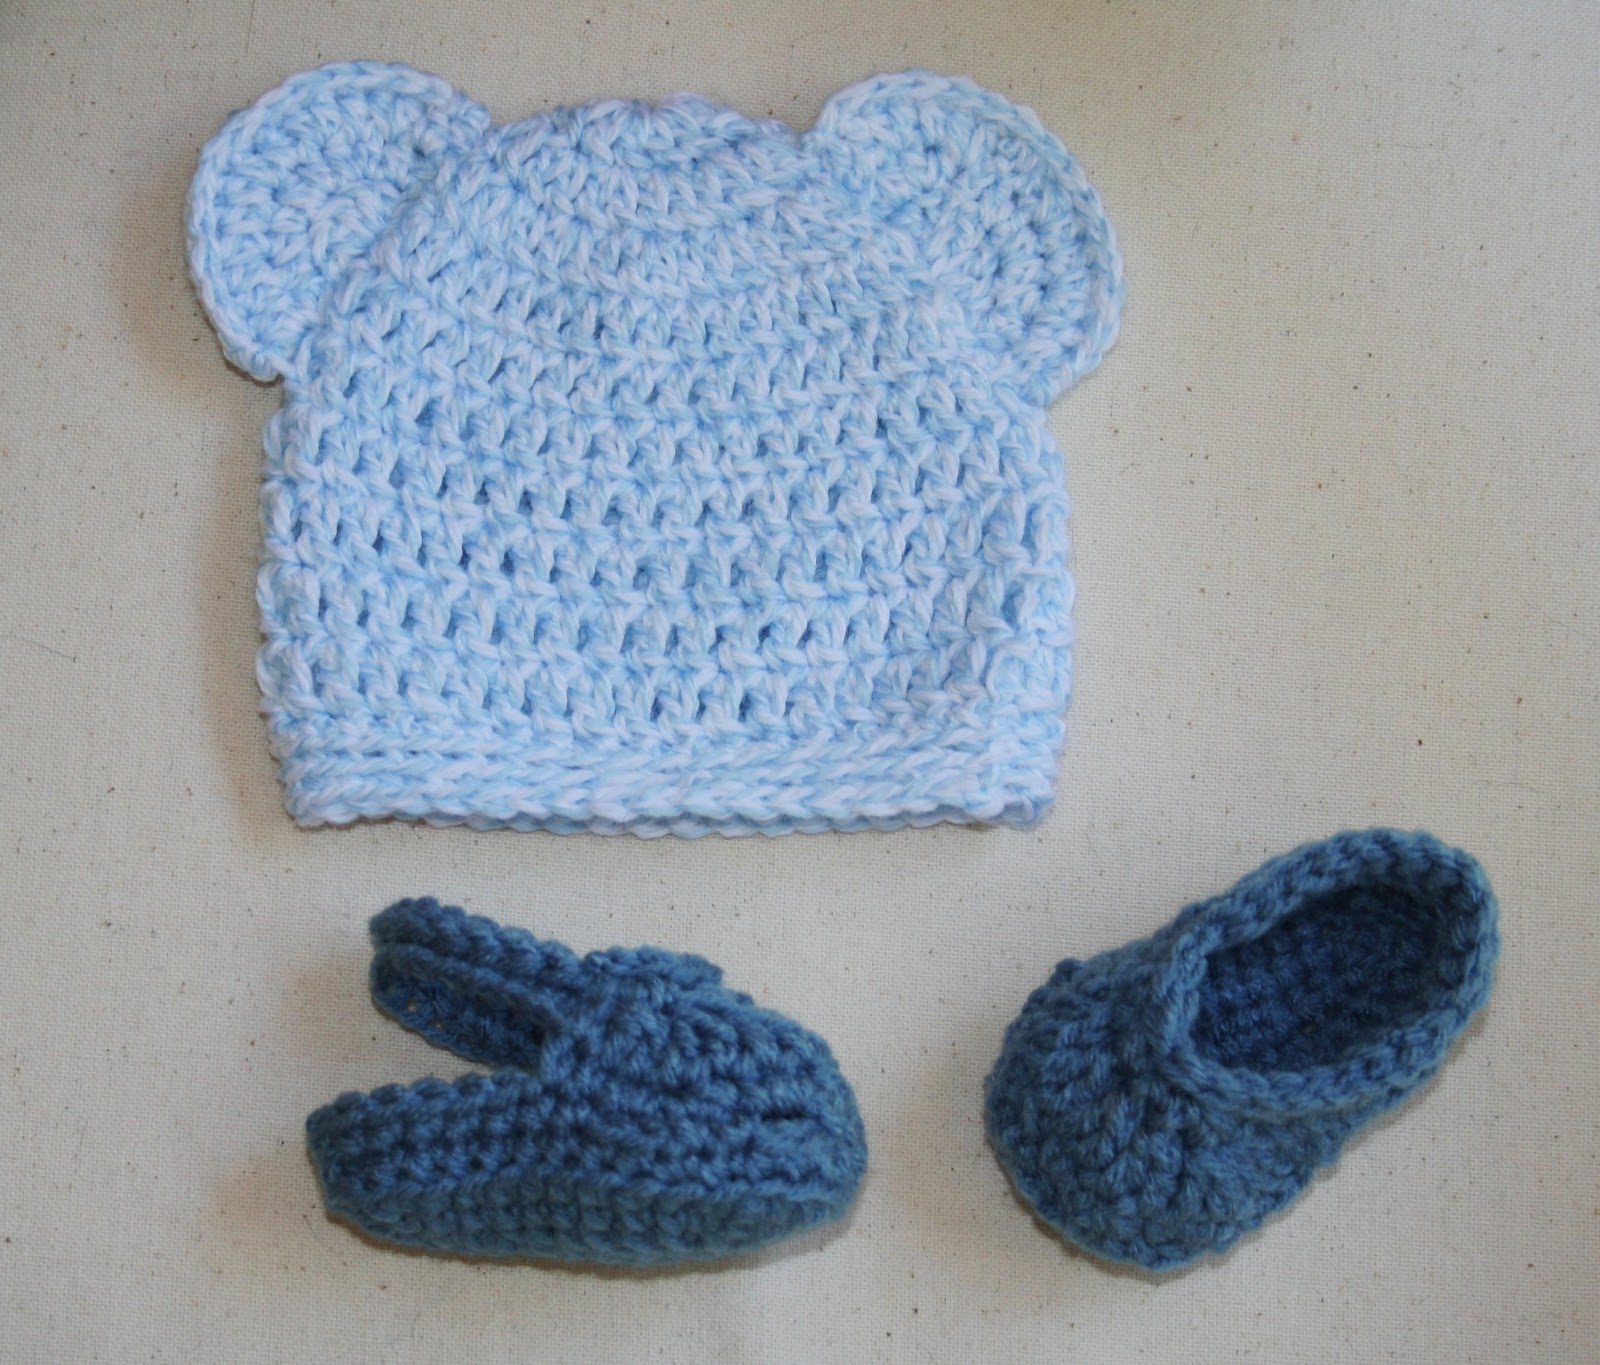 Crochet Baby Teddy Bear Hat Pattern : Tampa Bay Crochet: Crochet Baby Bear Hat & Crocs Sandals ...